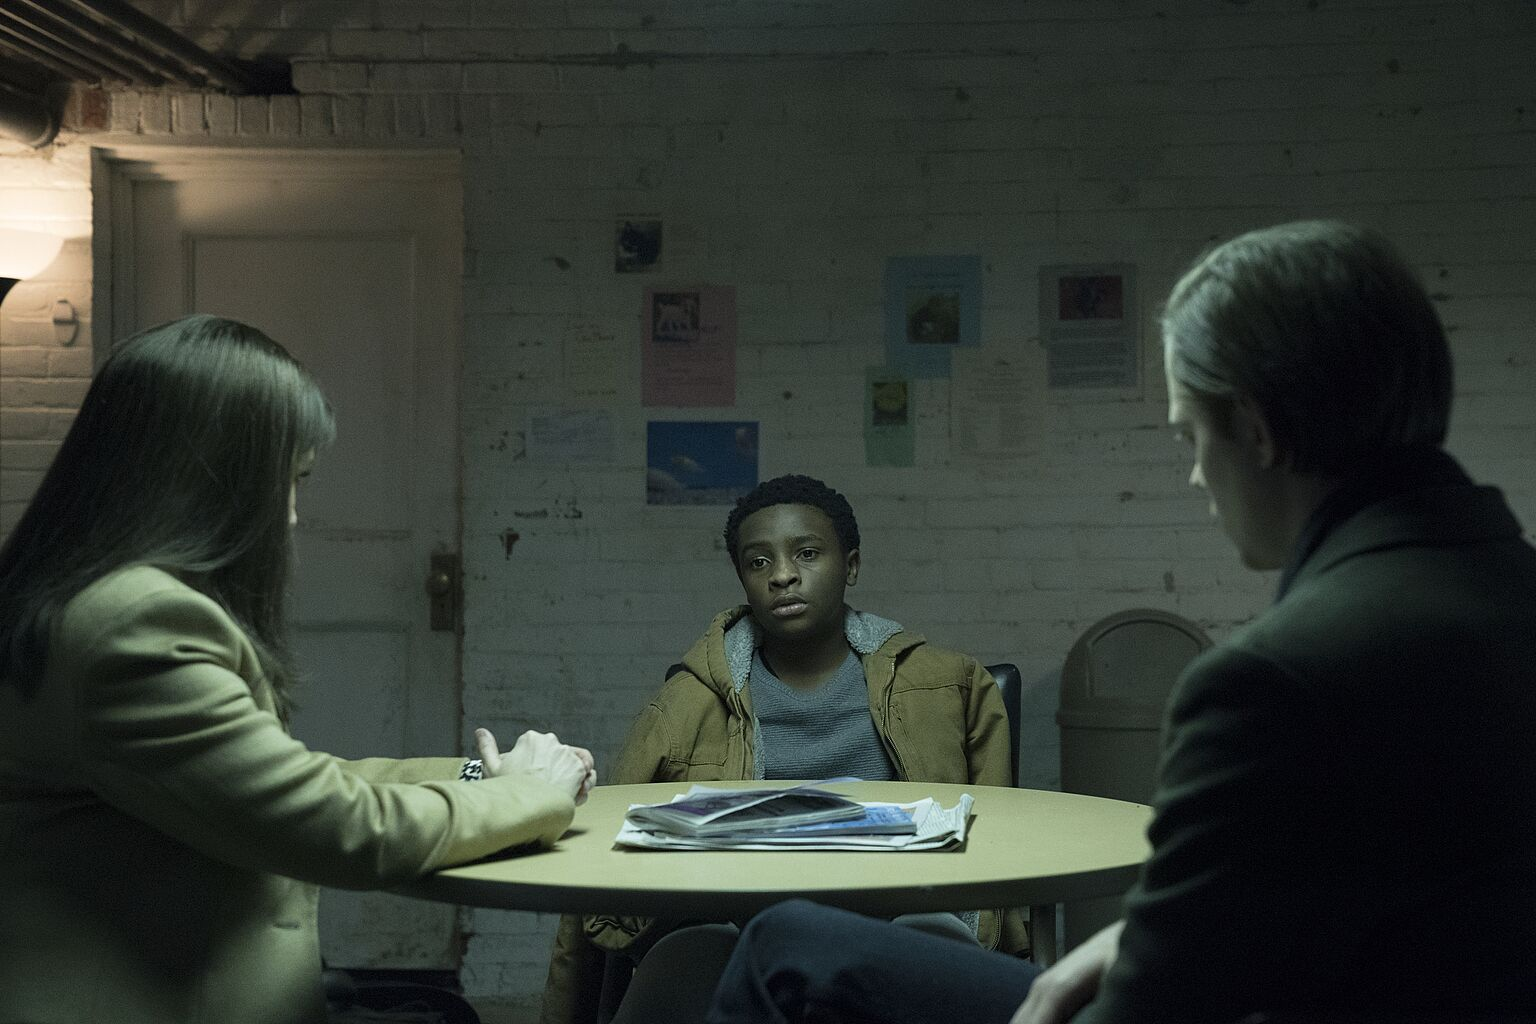 Castle Rock season 1, episode 9 recap: Bizarre turn